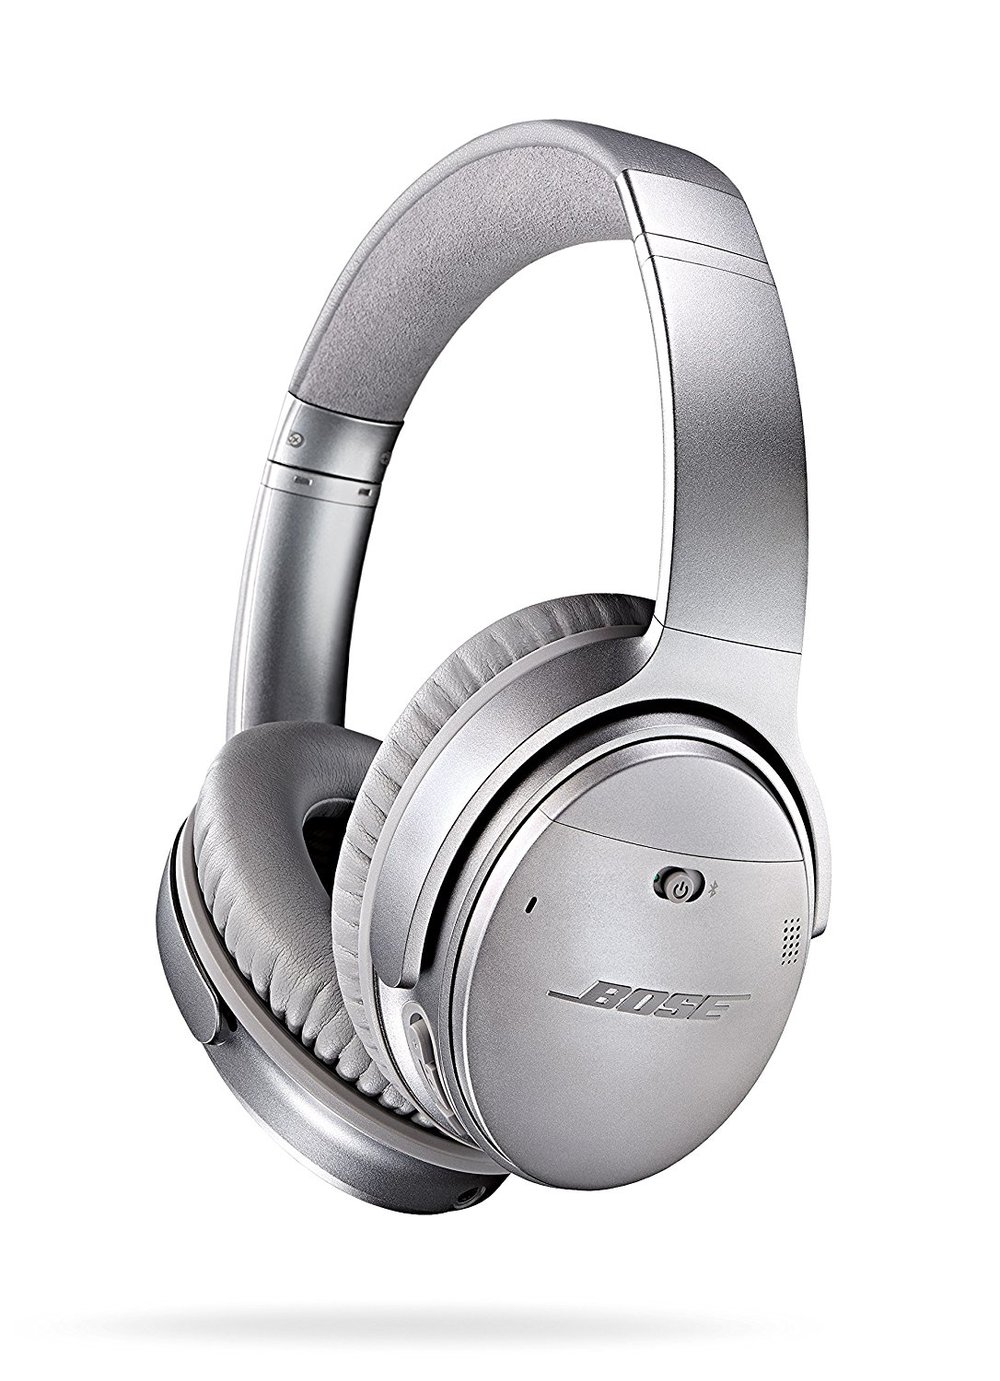 Best Bluetooth headphones Bose quietcomfort 35 wireless